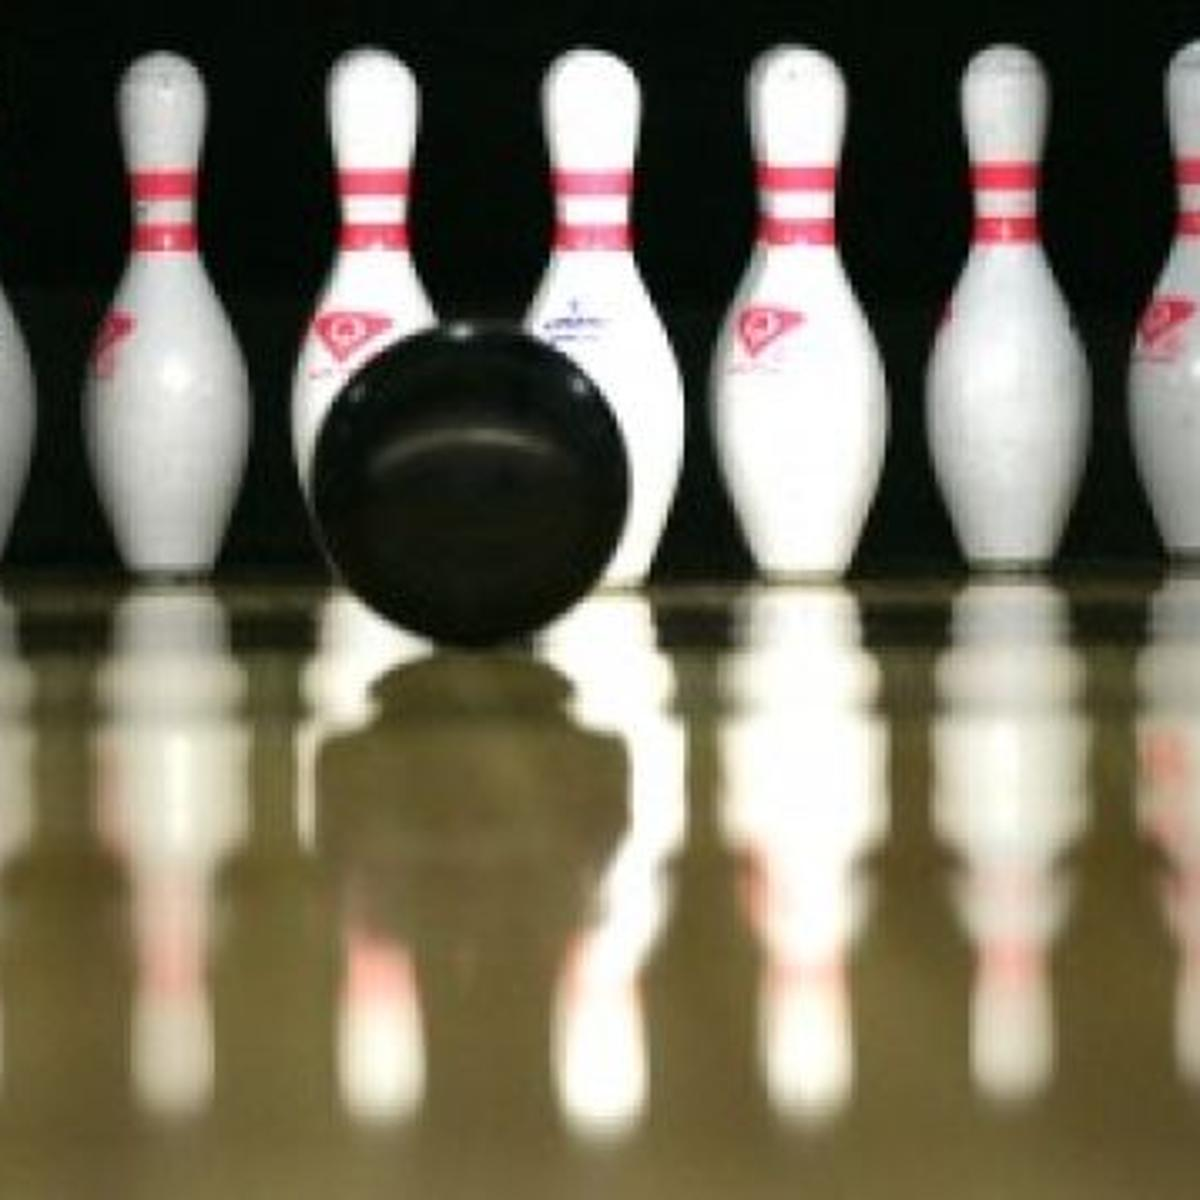 Marcum is 'In the Zone Bowler of the Week' | Community